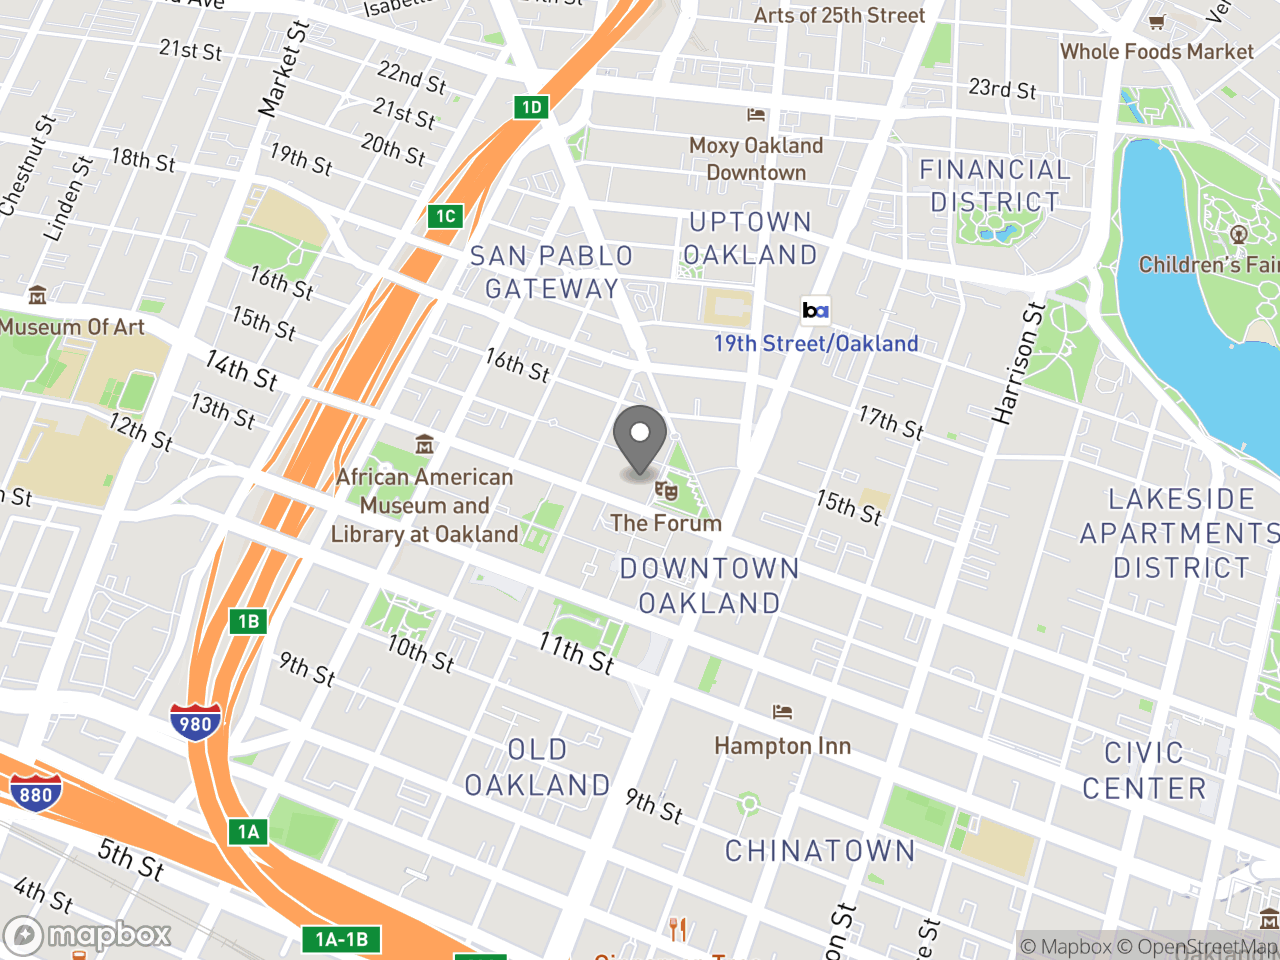 Map image for Mayor's Commission on Persons with Disabilities, located at 1 Frank H Ogawa Plaza in Oakland, CA 94612